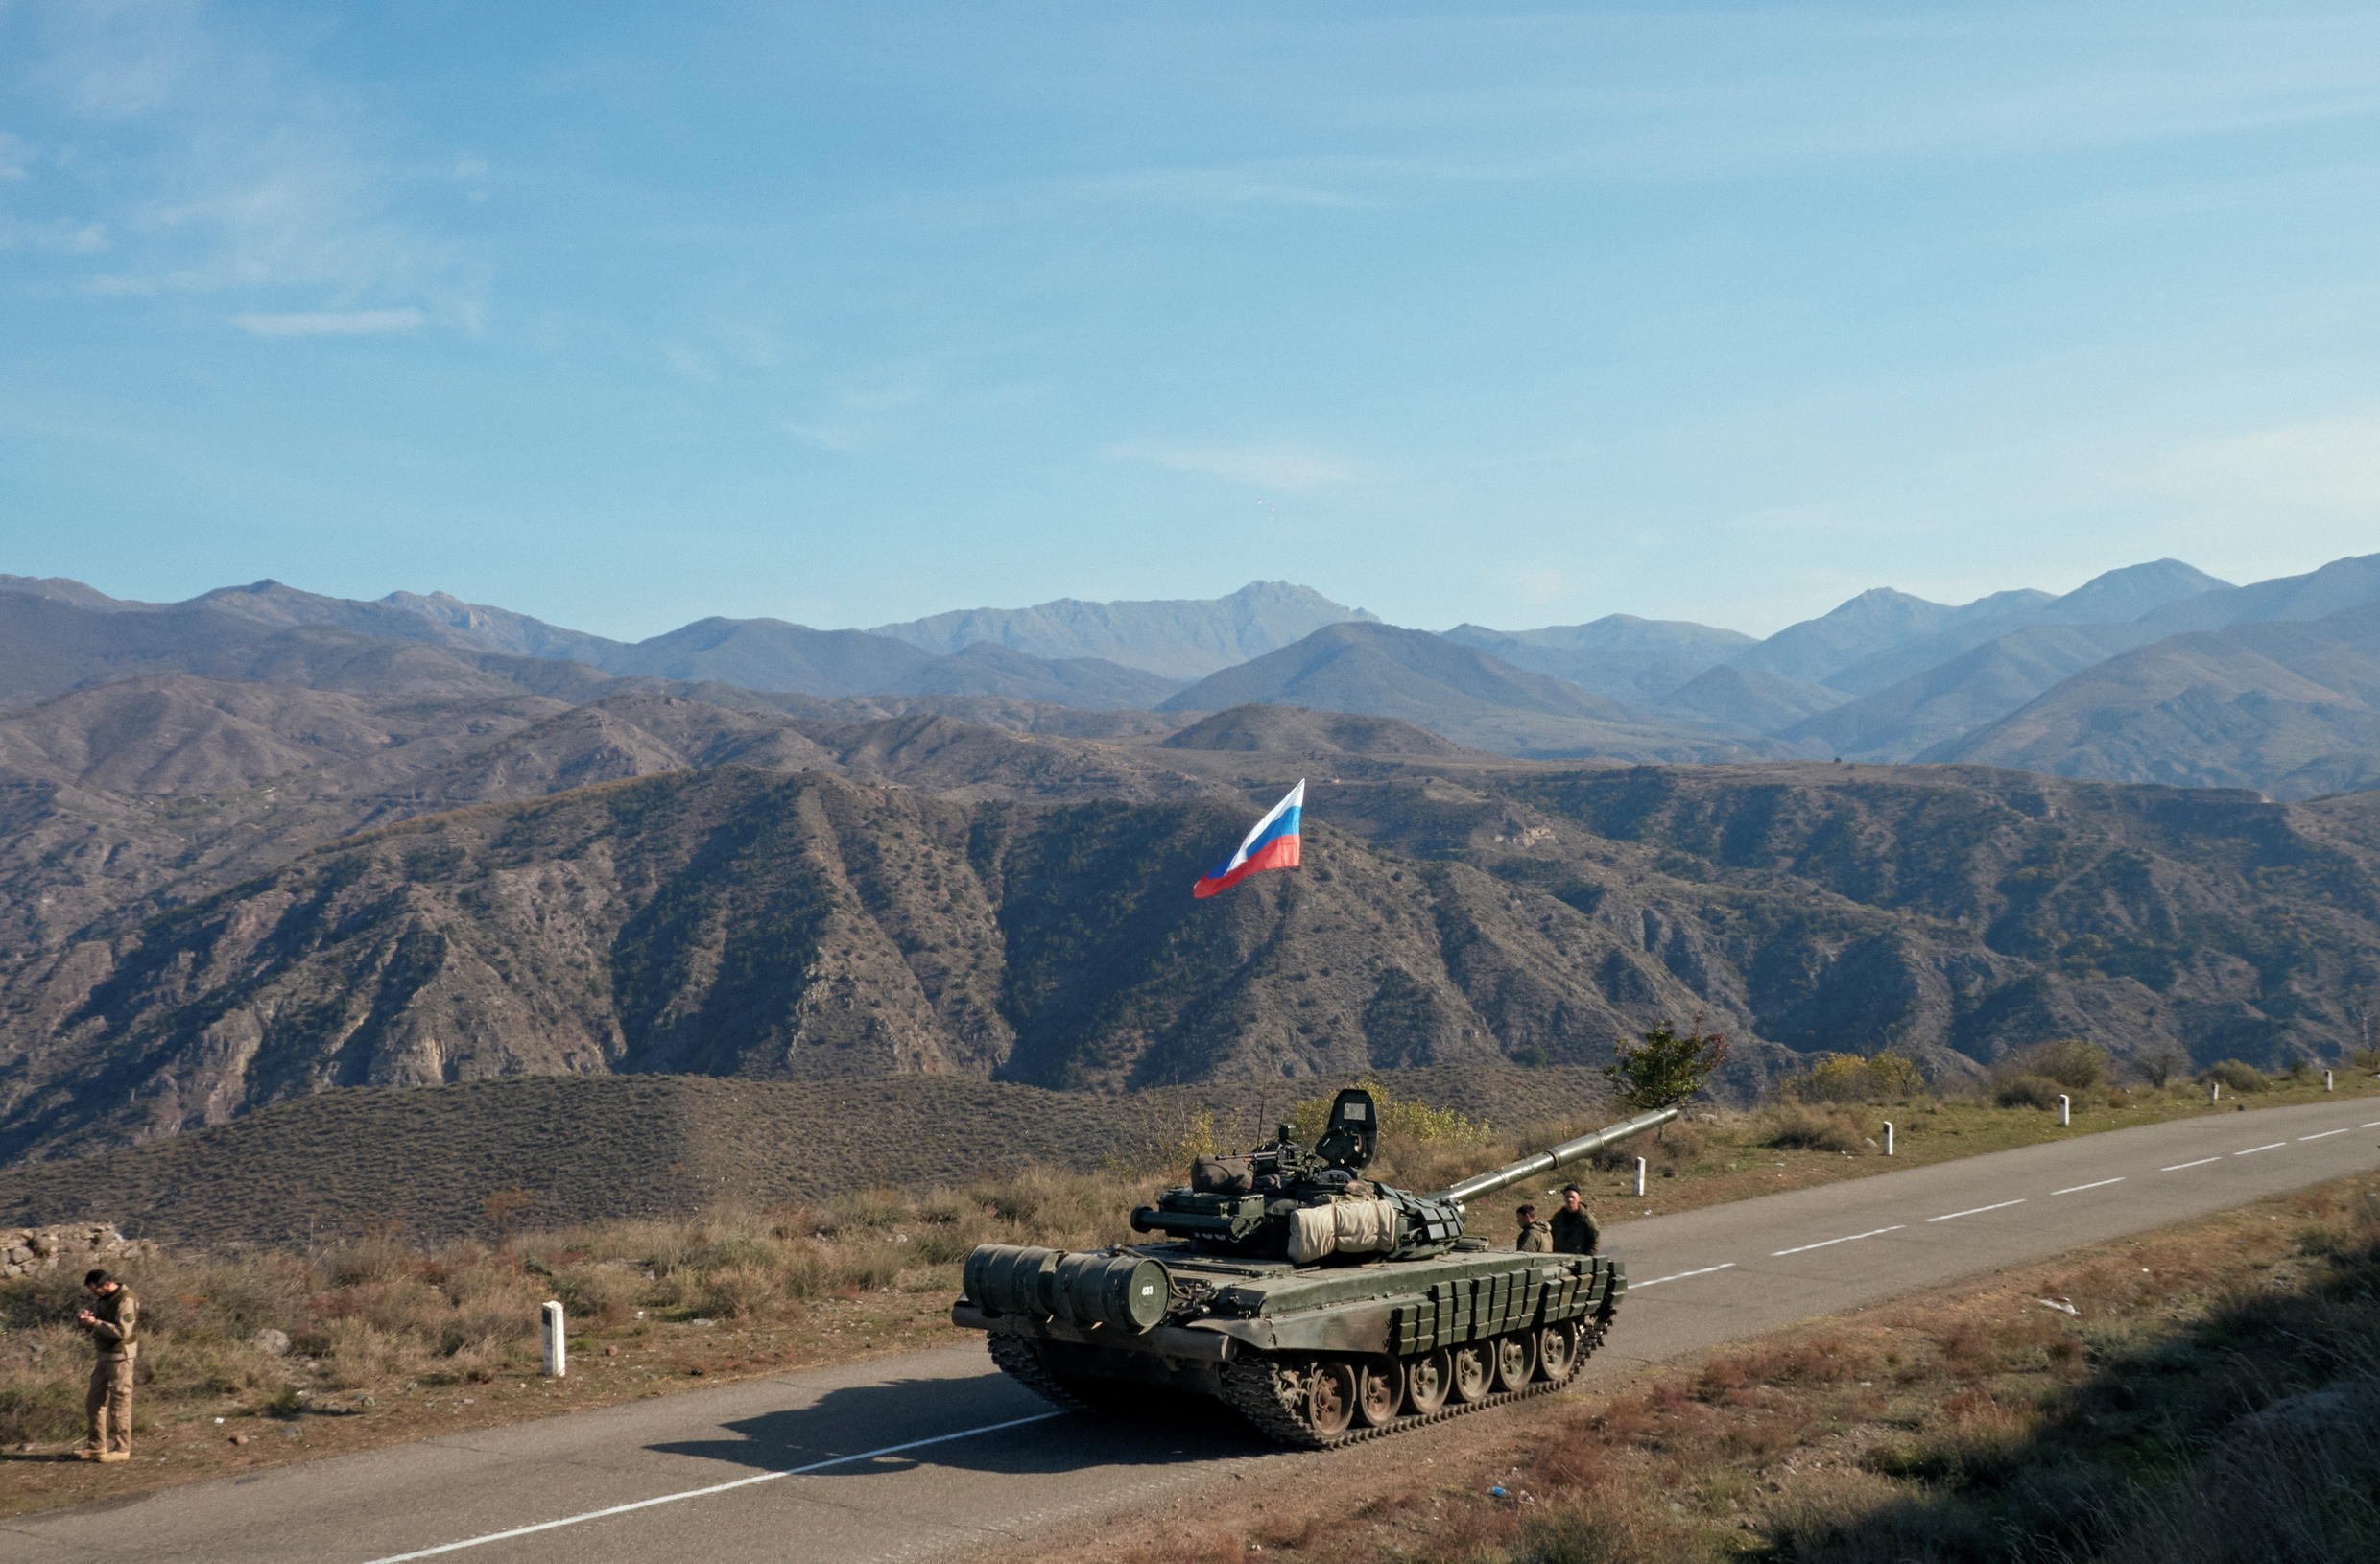 Russian peacekeeping troops near the border with Armenia, following the signing of a ceasefire between Azerbaijan and Armenian forces, in the Nagorno-Karabakh region on 10 November 2020.